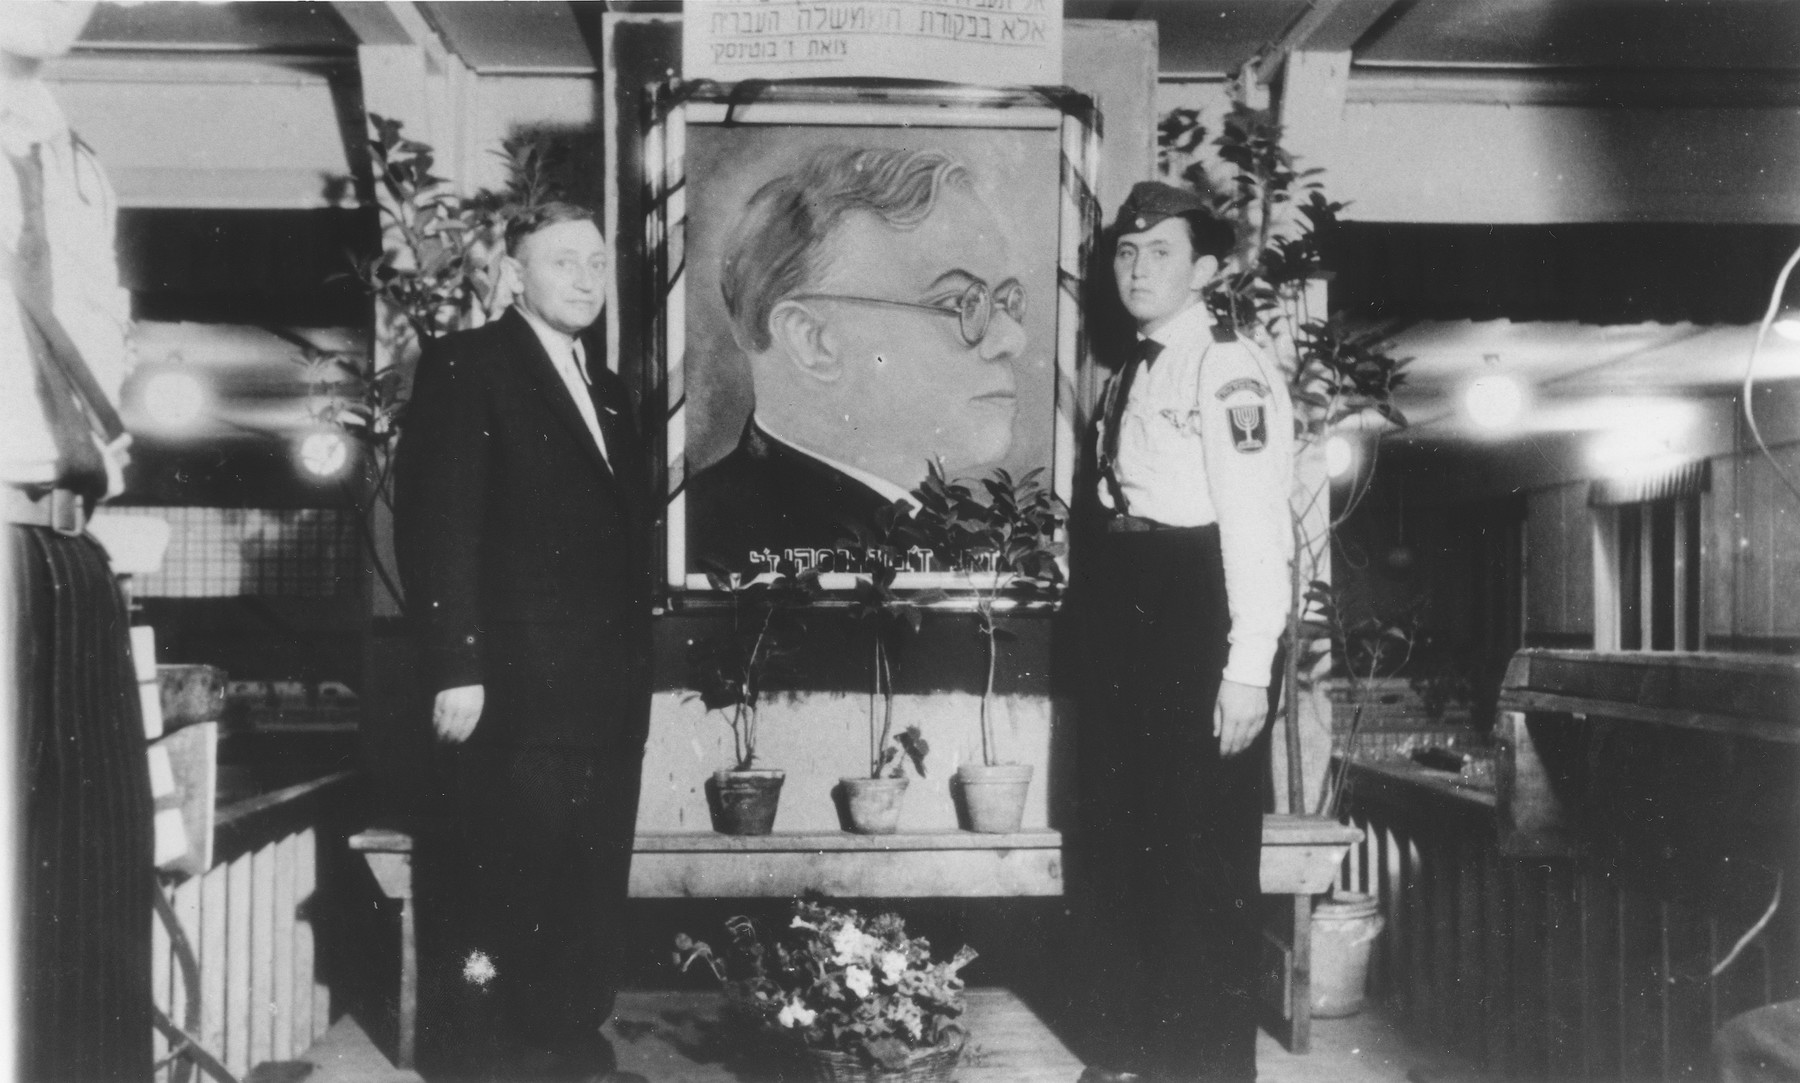 Yeshayahu Zycer and his father Ephraim pose on either side of a portrait of Zev Jabotinsky, founder of the Betar Zionist youth movement.